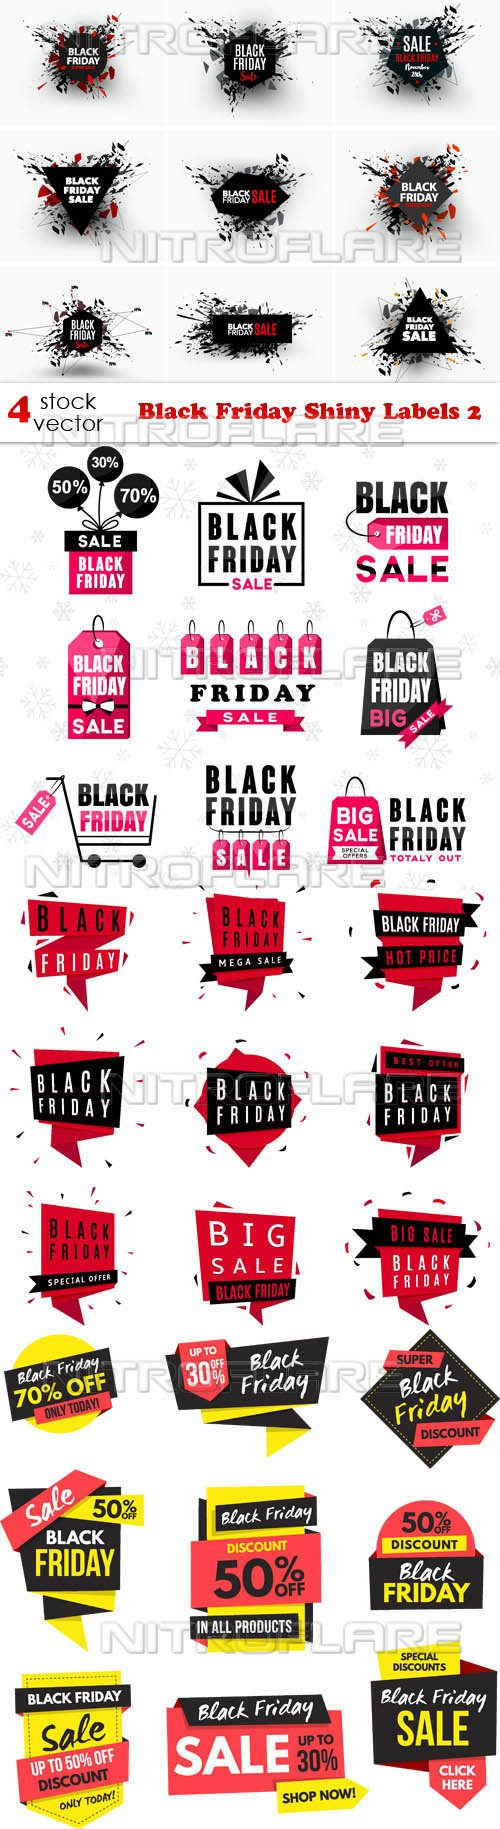 Vectors - Black Friday Shiny Labels 2